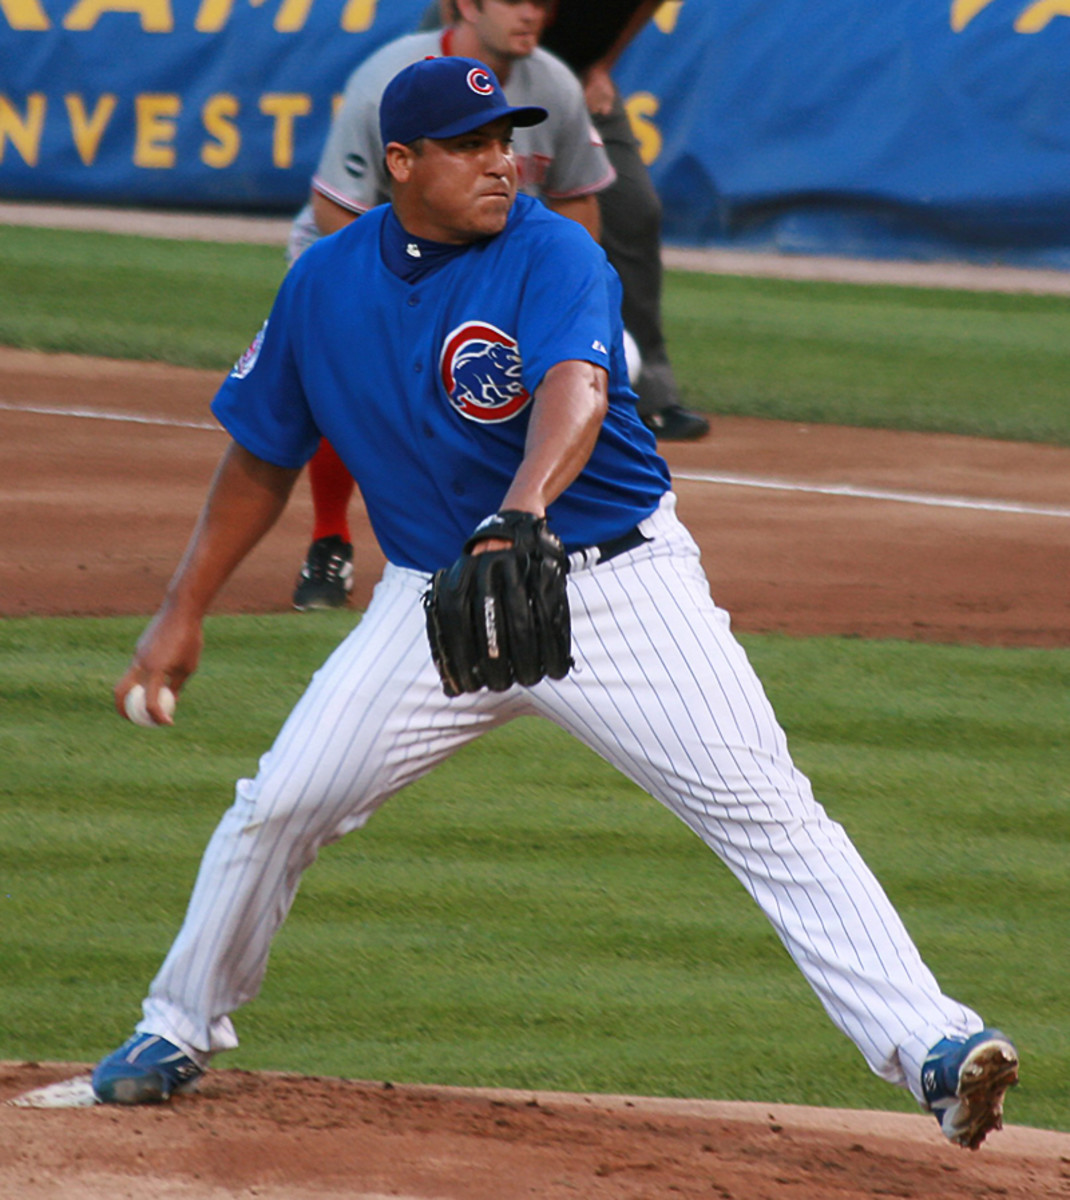 Carlos Zambrano belted 24 homers in his career.